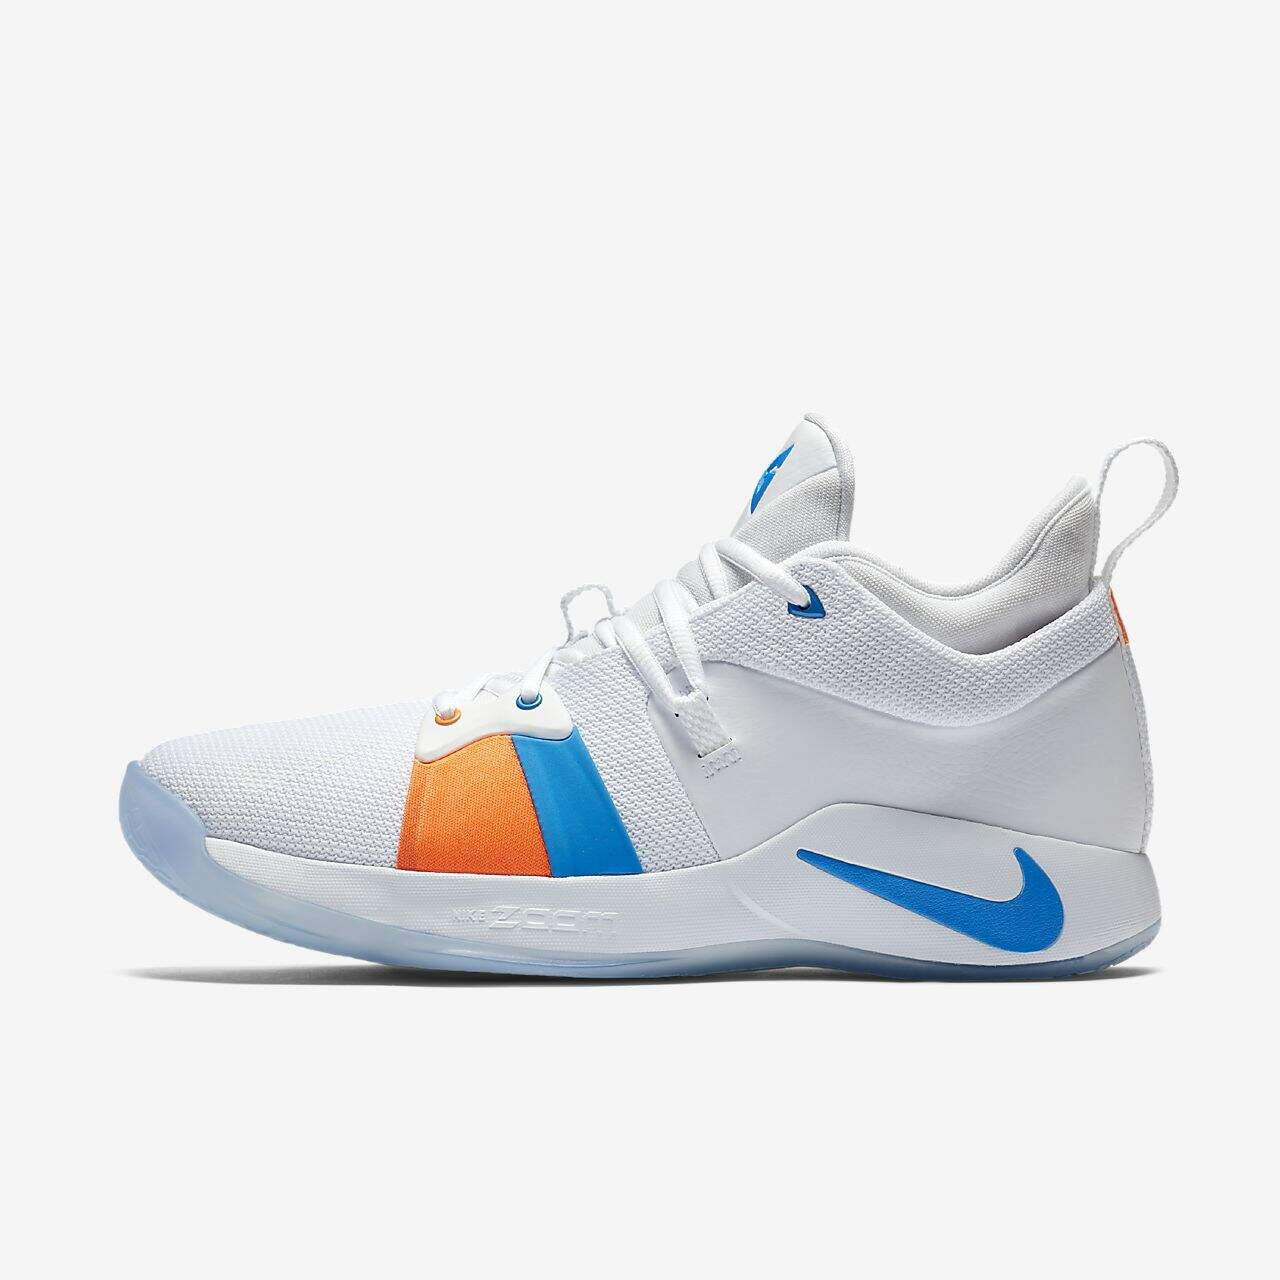 PG 2 White / Ice Masculino